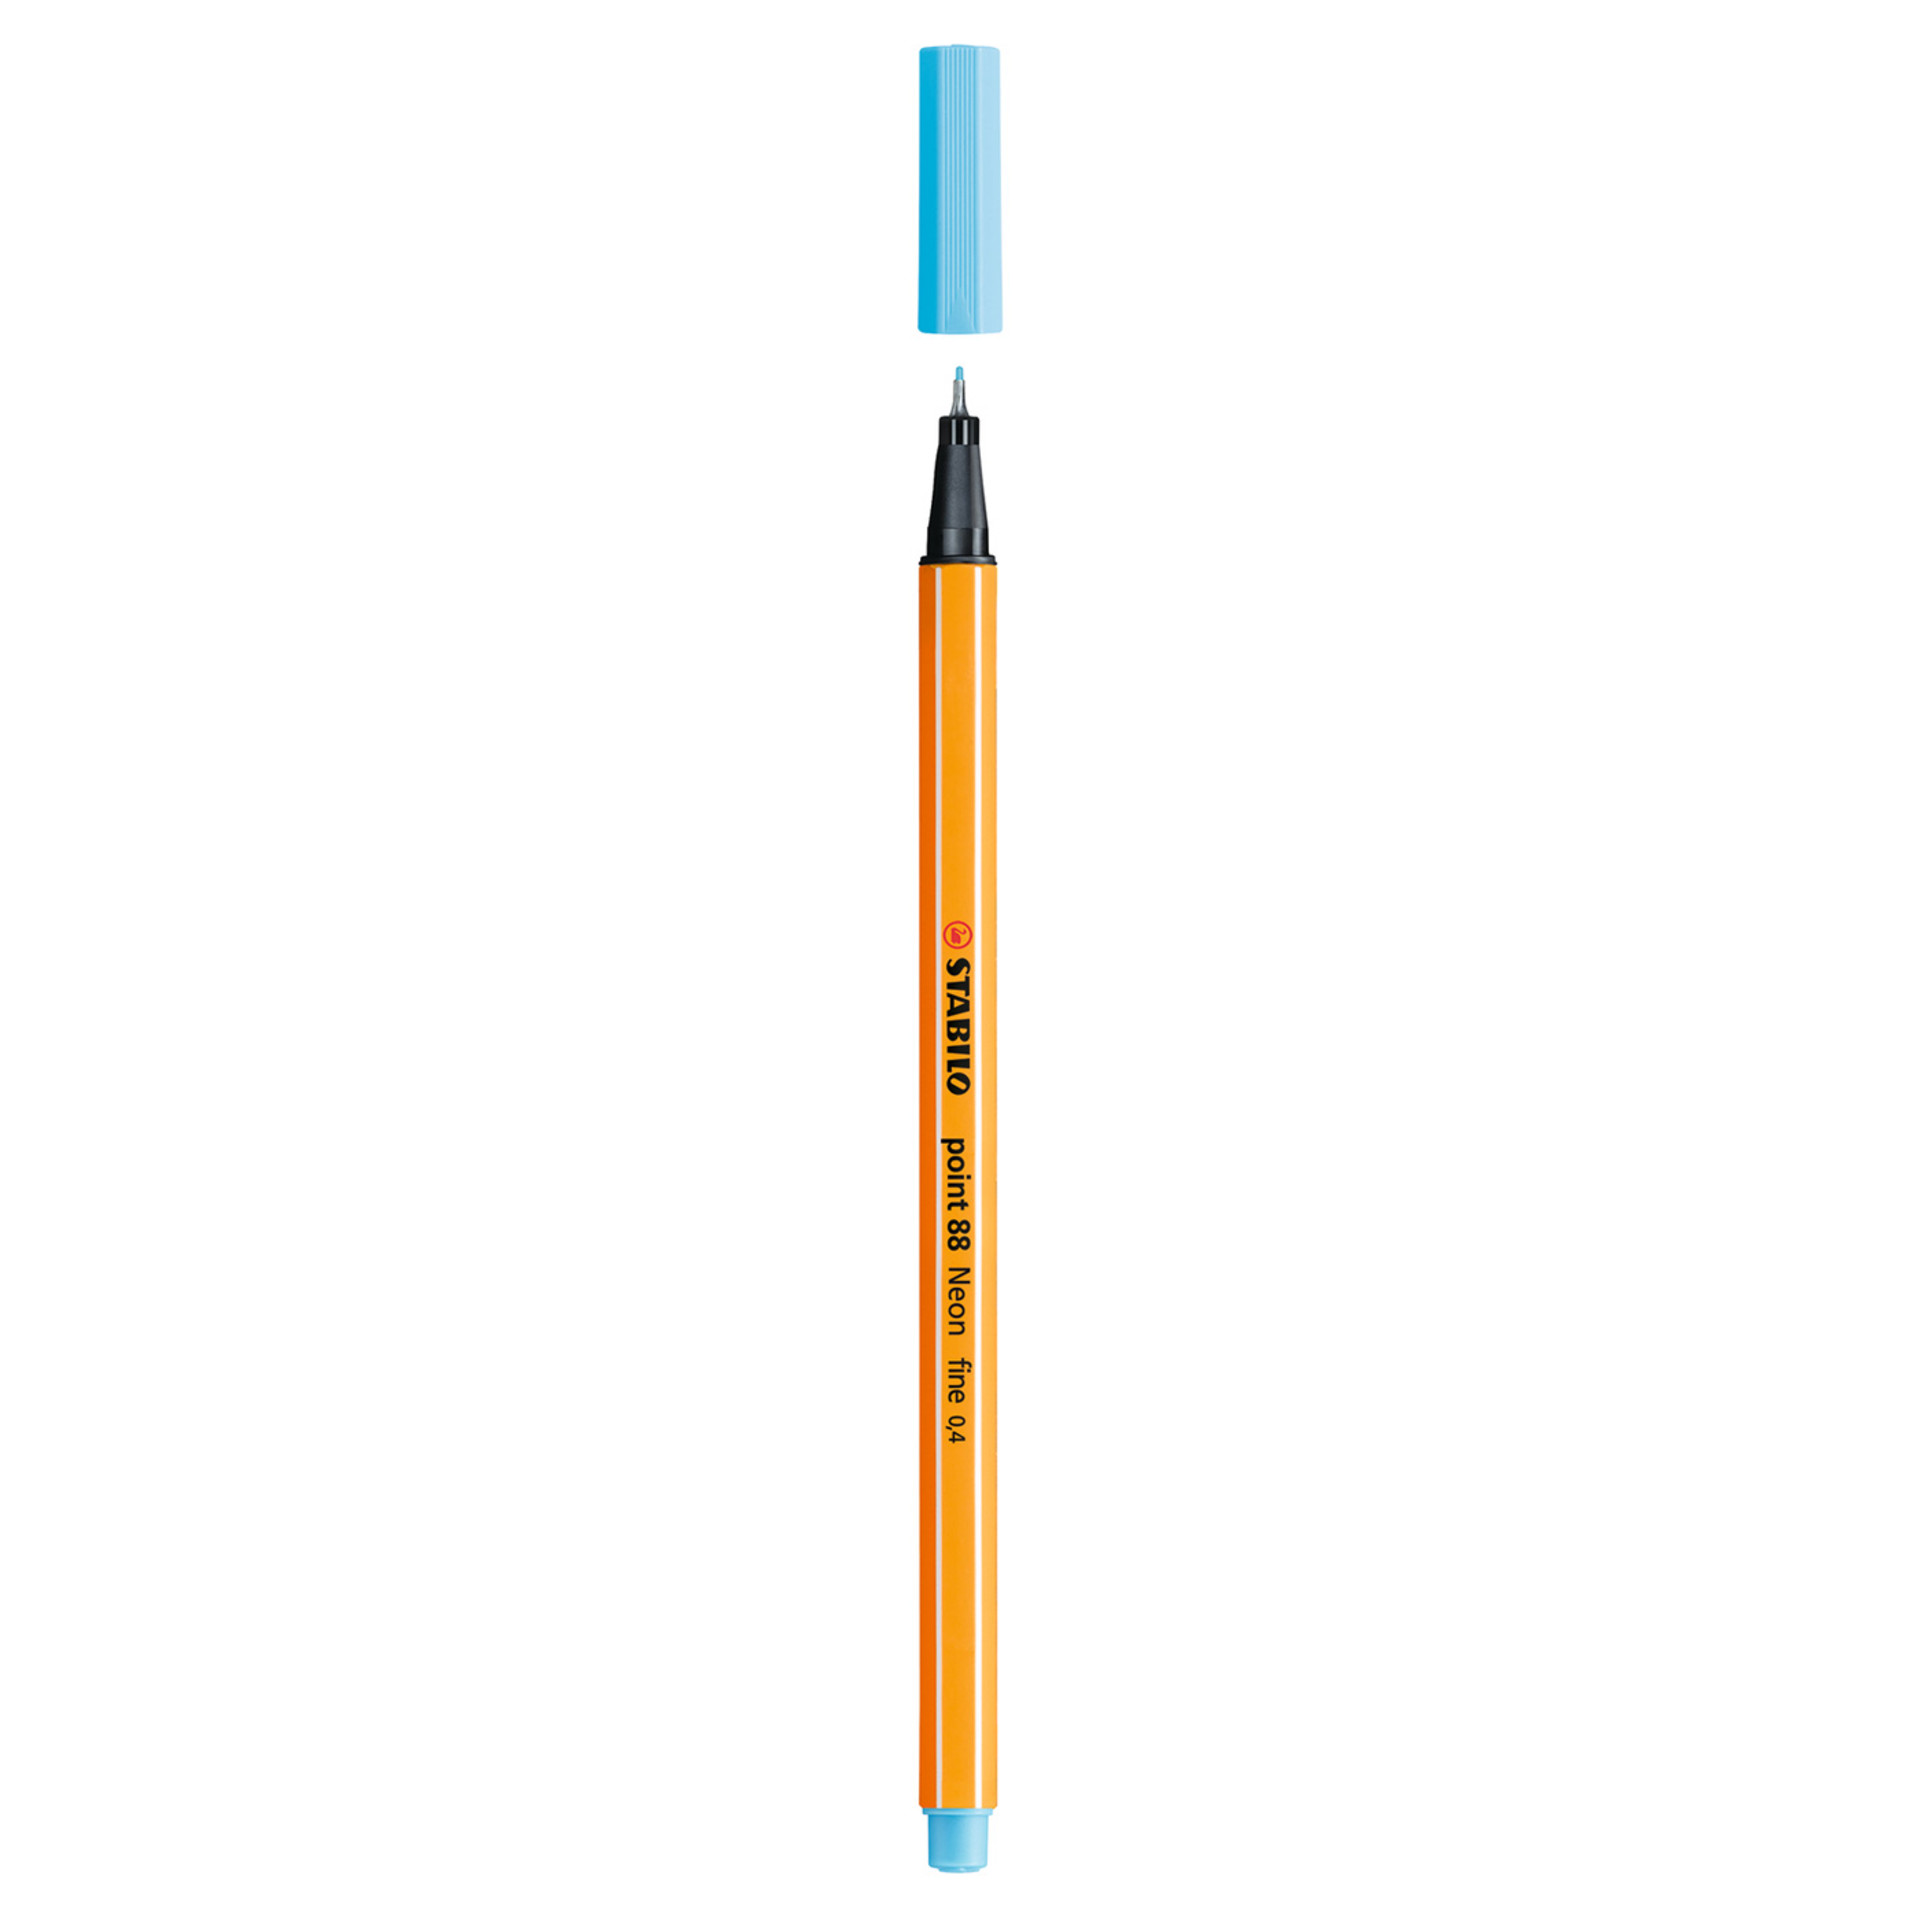 Stabilo Point 88 .4mm Fineliner Pen – Neon Blue